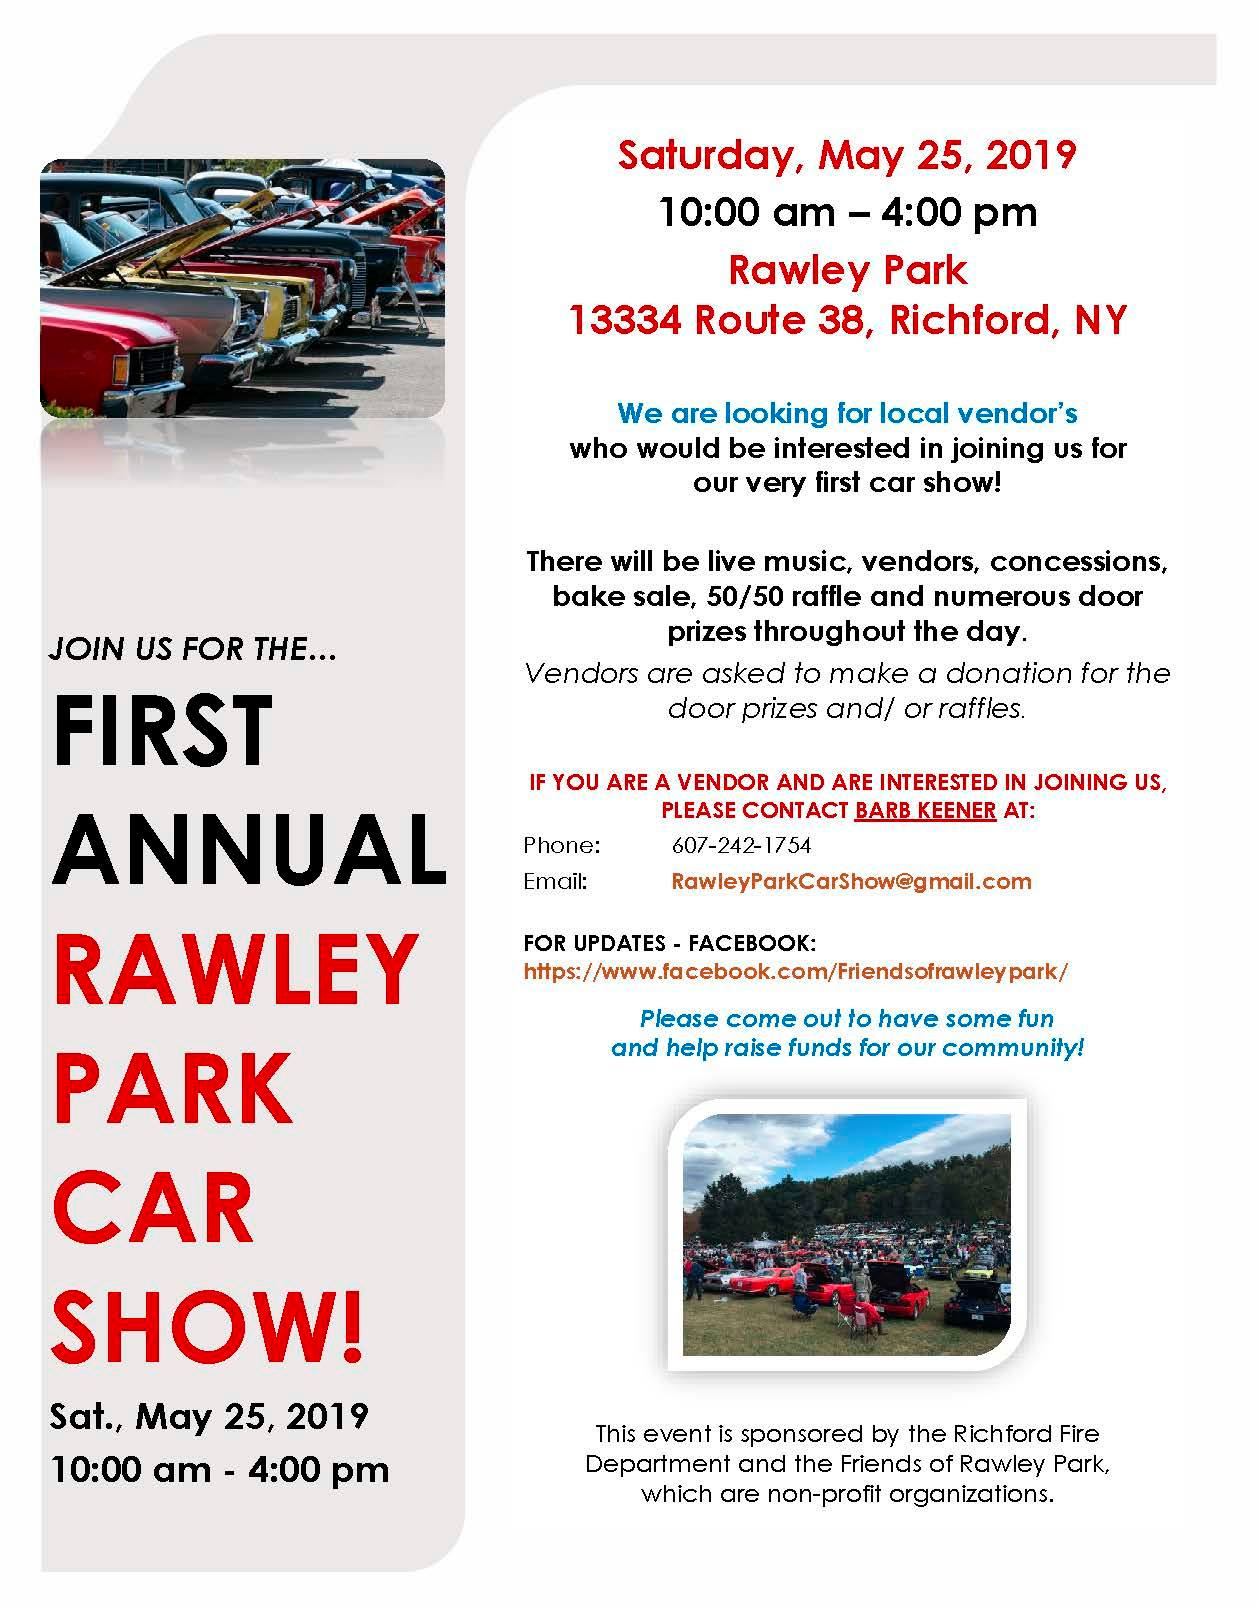 First Annual Rawley Park Car Show 2019 @ Rawley Park